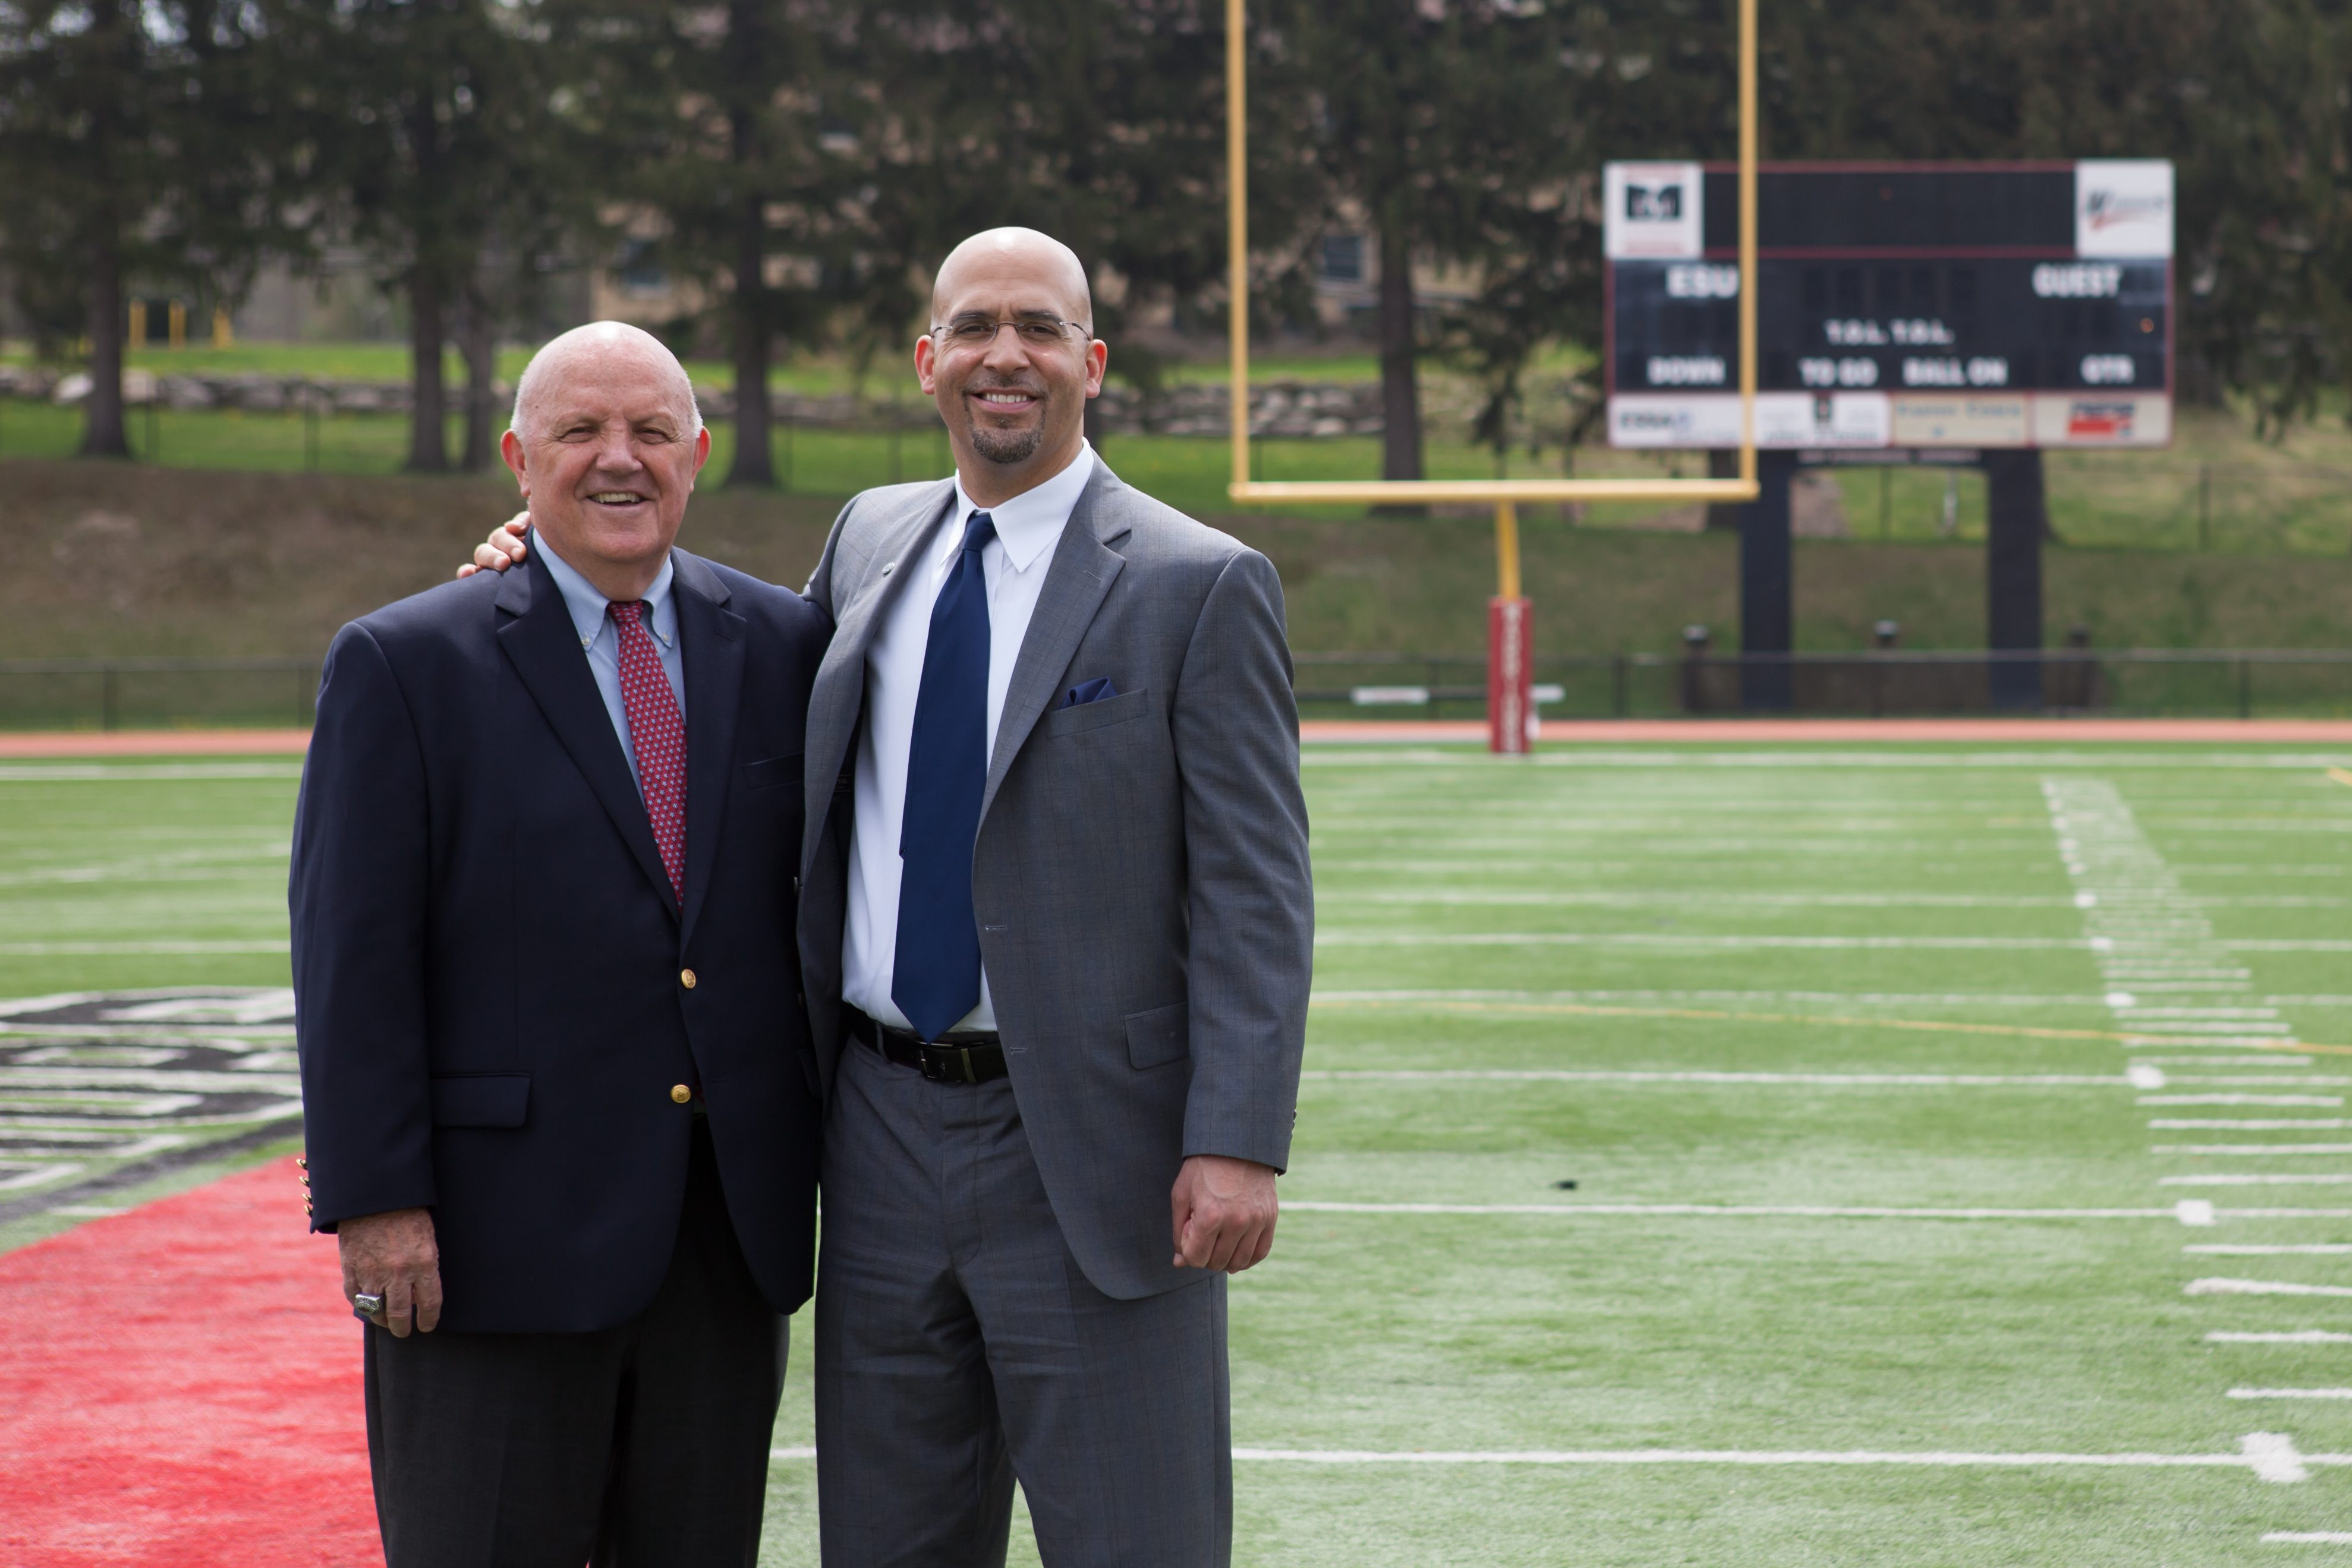 Denny Douds coached James Franklin at East Strousburg University in the early 90s.